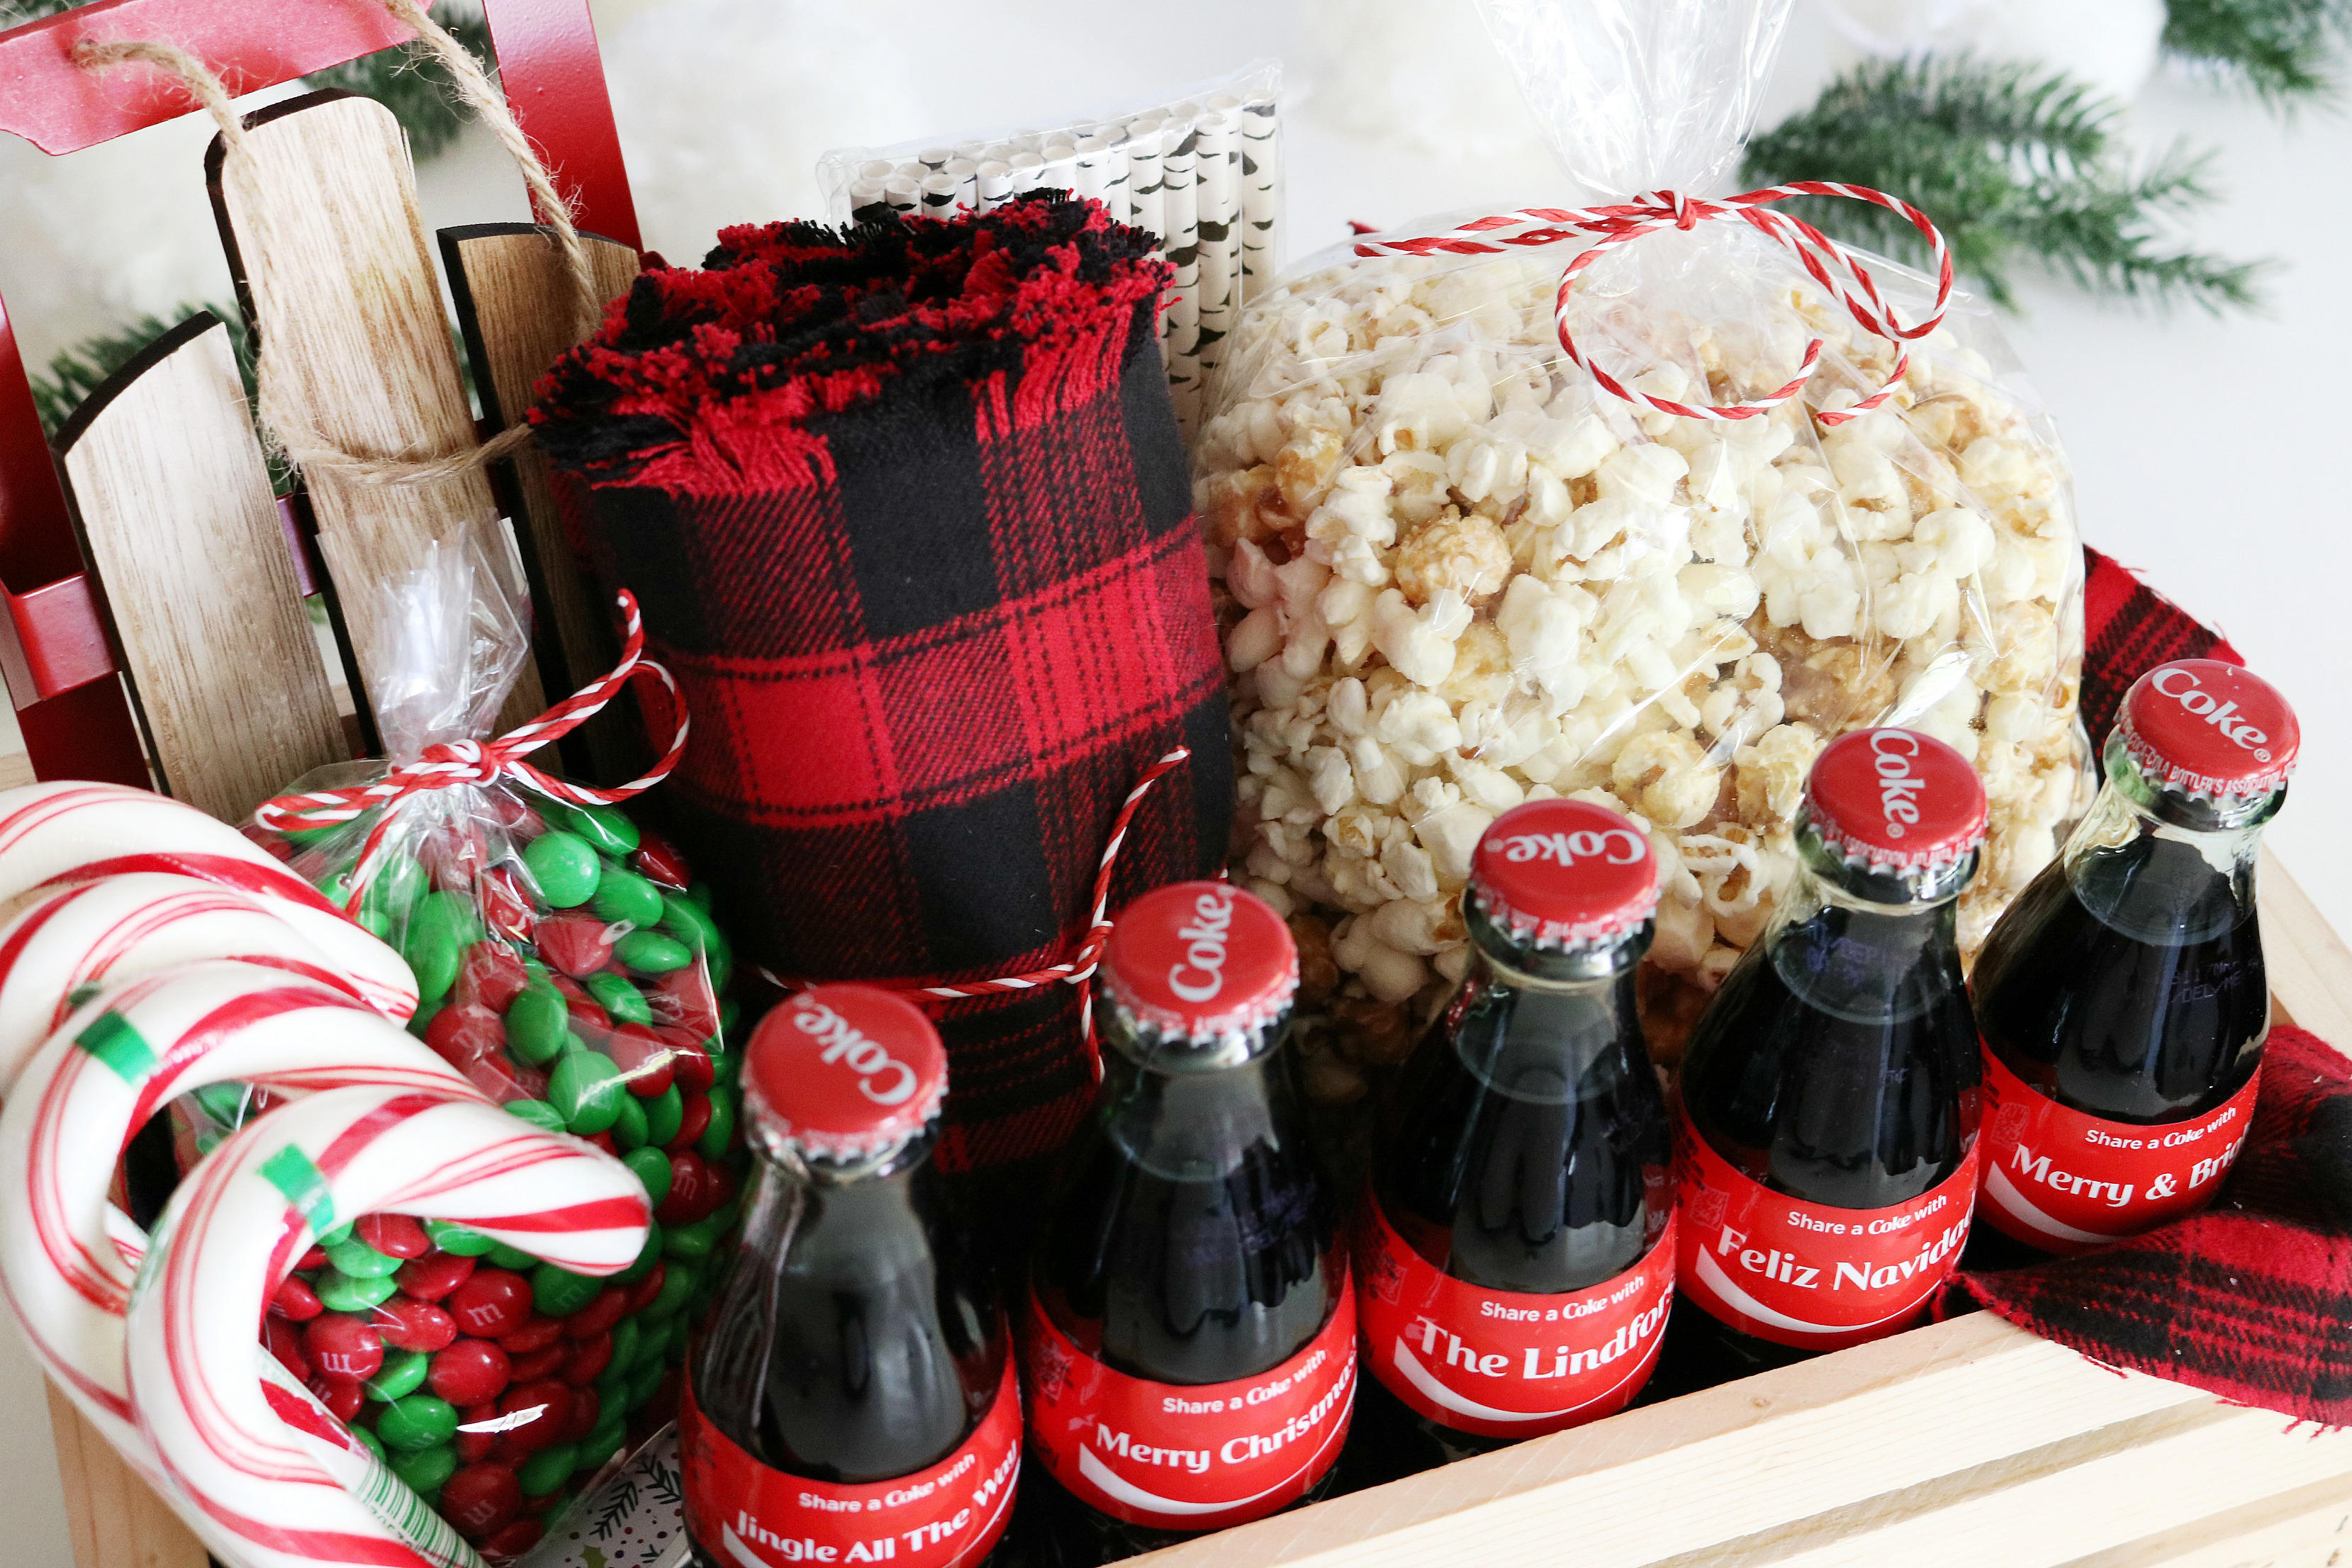 Coca-Cola Christmas Gift Basket Idea